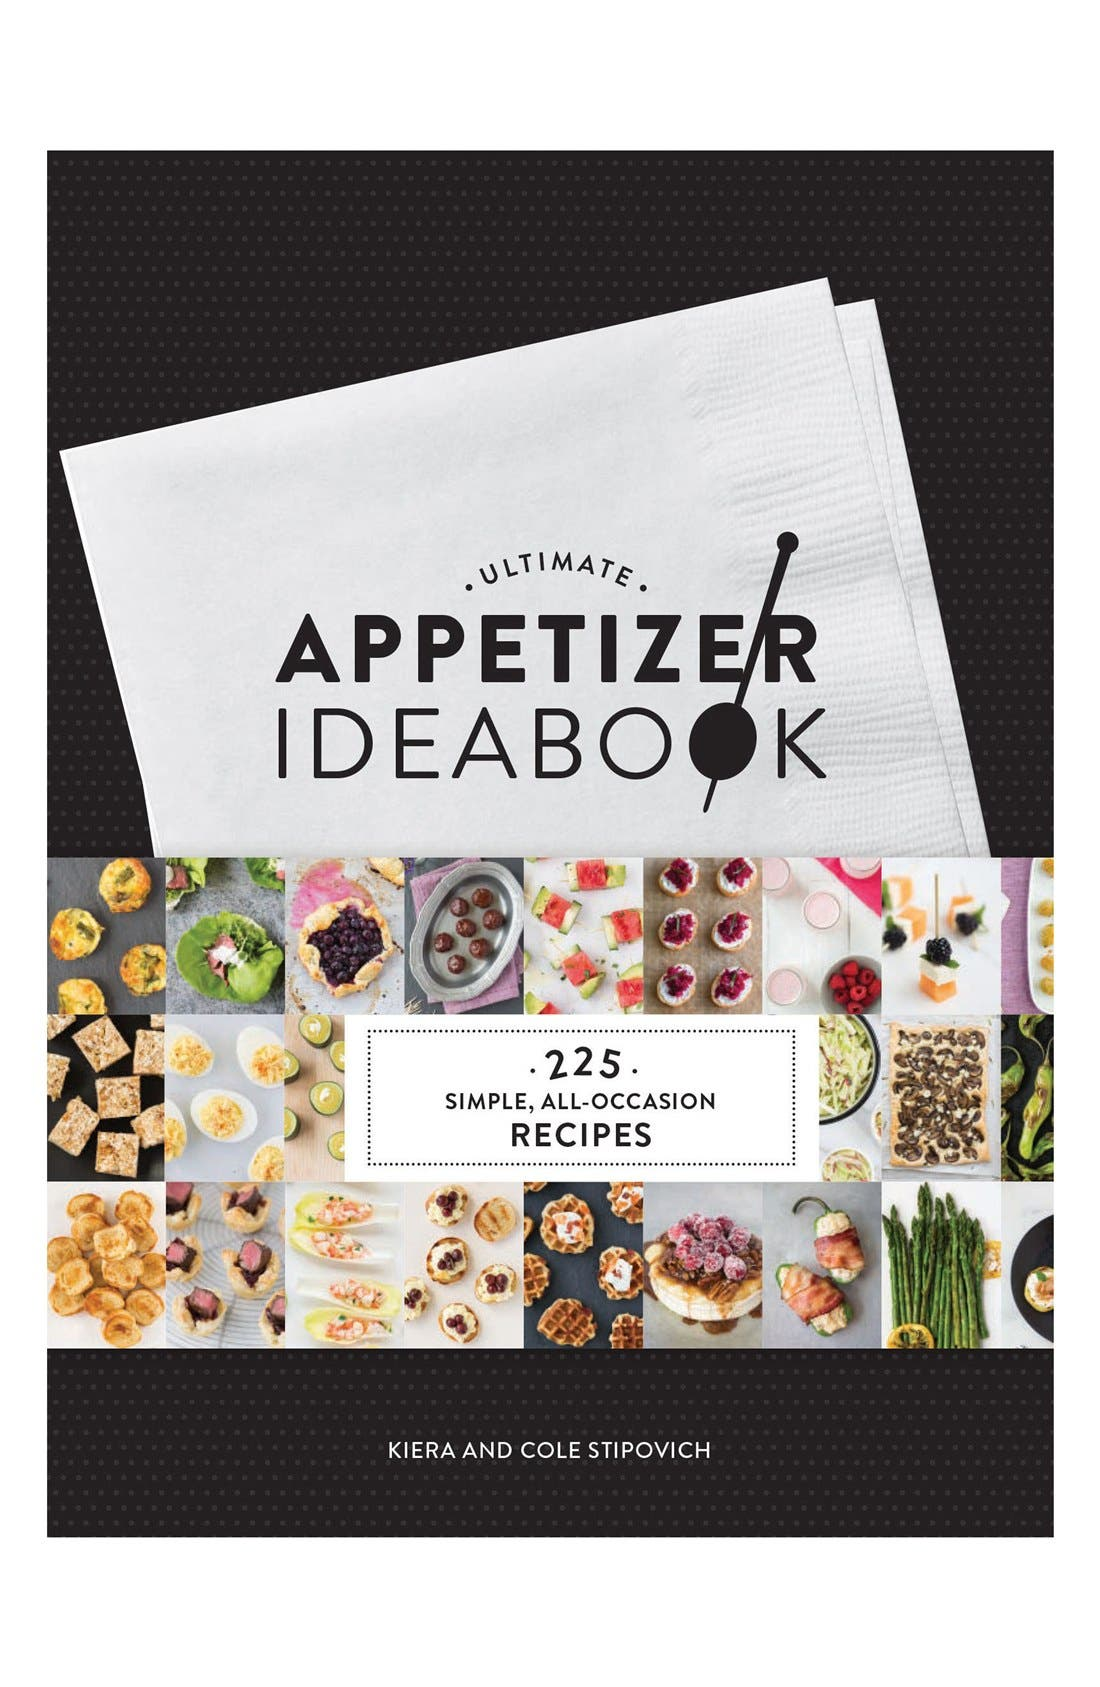 Alternate Image 1 Selected - 'Ultimate Appetizer Ideabook' Book